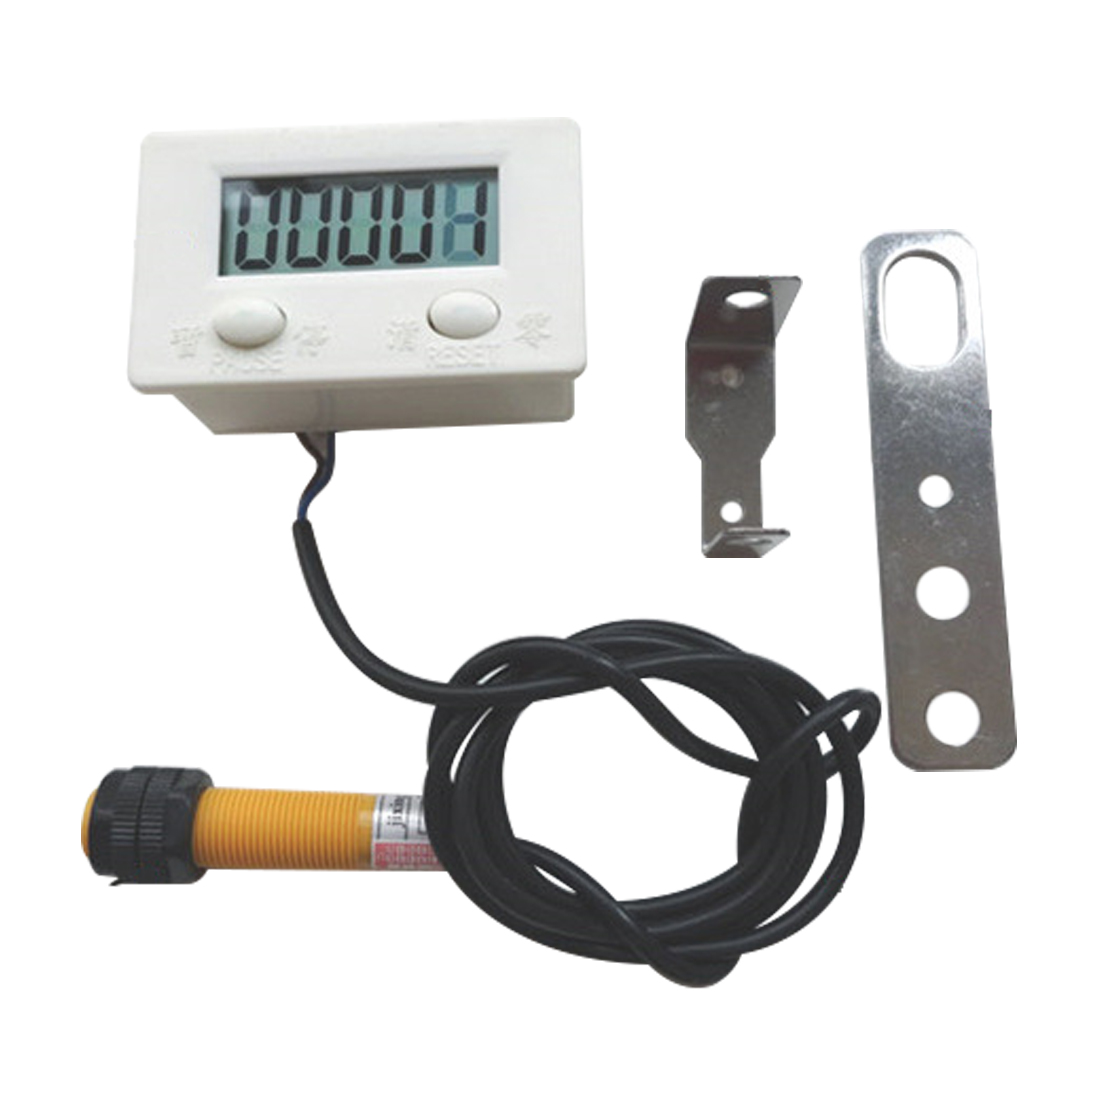 New P11-5A LCD Digital Display Electronic Counter Punch Magnetic Induction Proximity Switch Reciprocating Rotary Counter цена